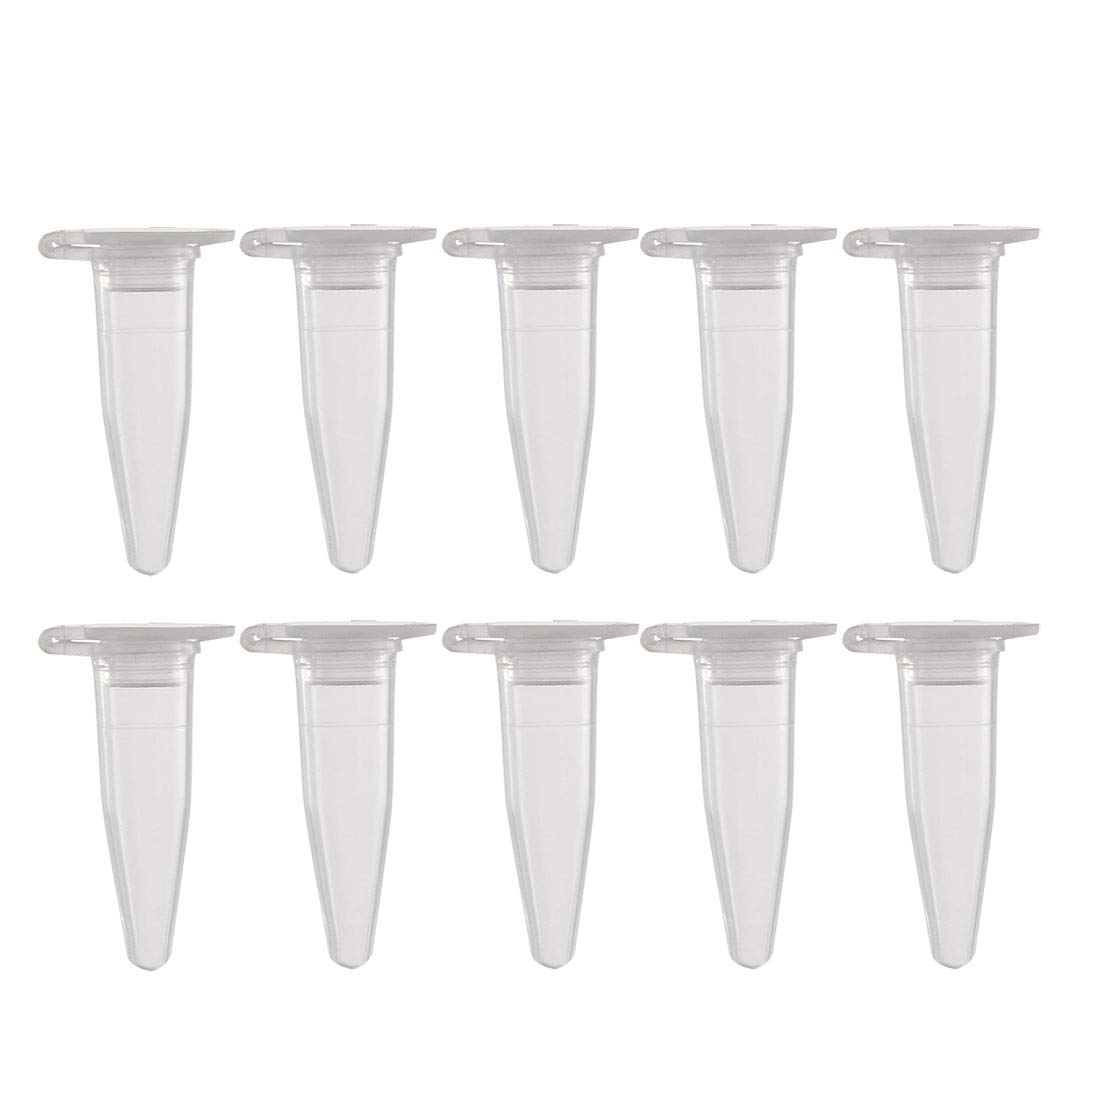 uxcell 50 Pcs 0.2ml Plastic Centrifuge Tubes with Attached Cap, Conical Bottom